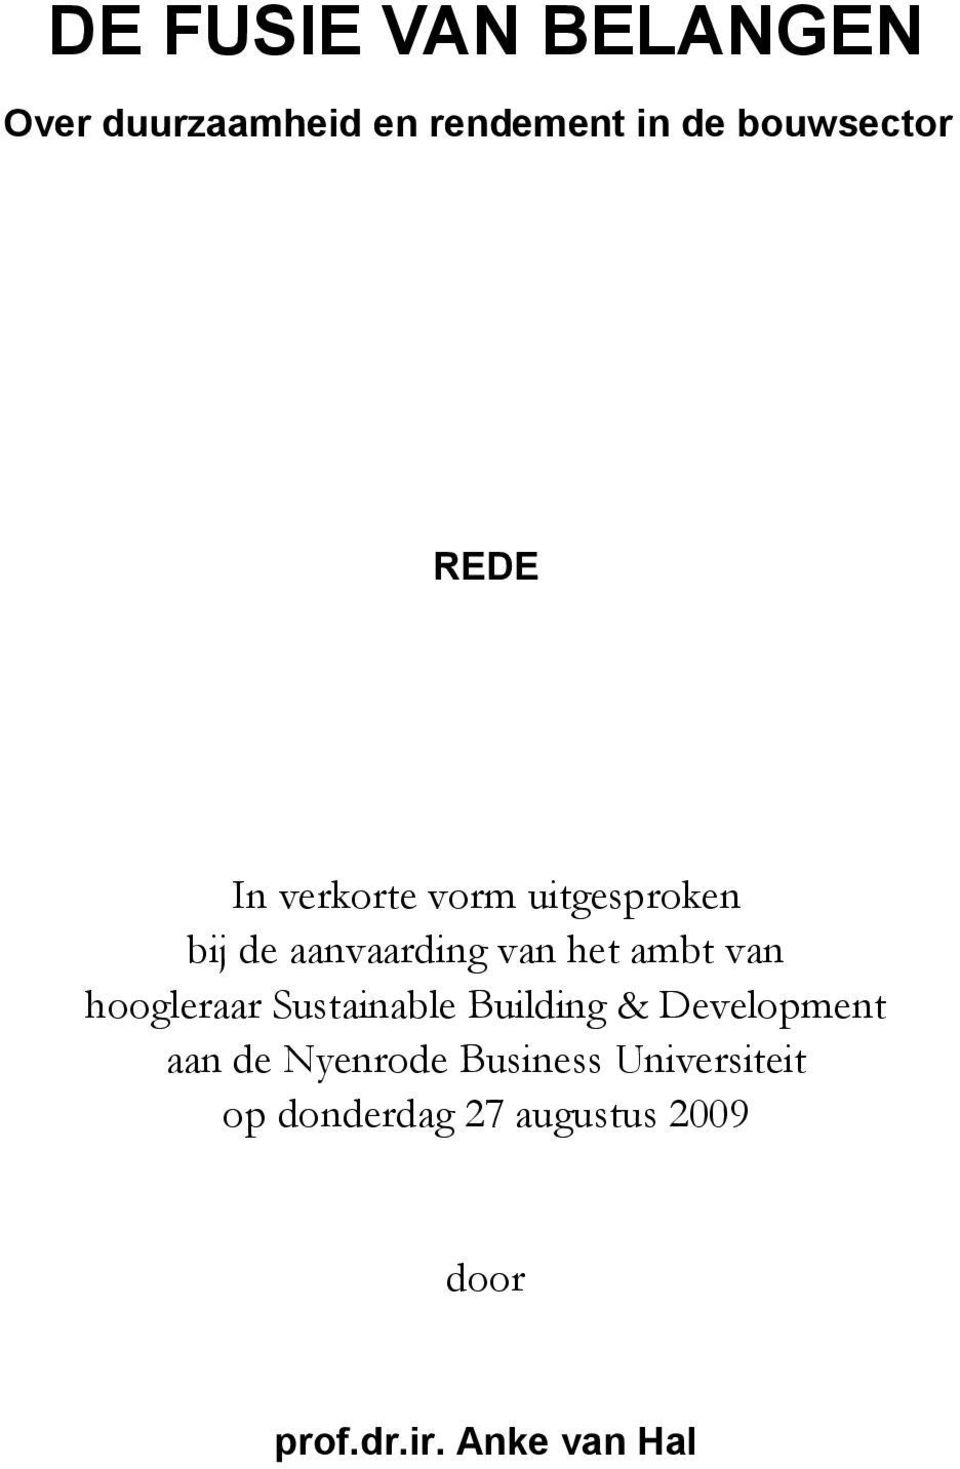 hoogleraar Sustainable Building & Development aan de Nyenrode Business